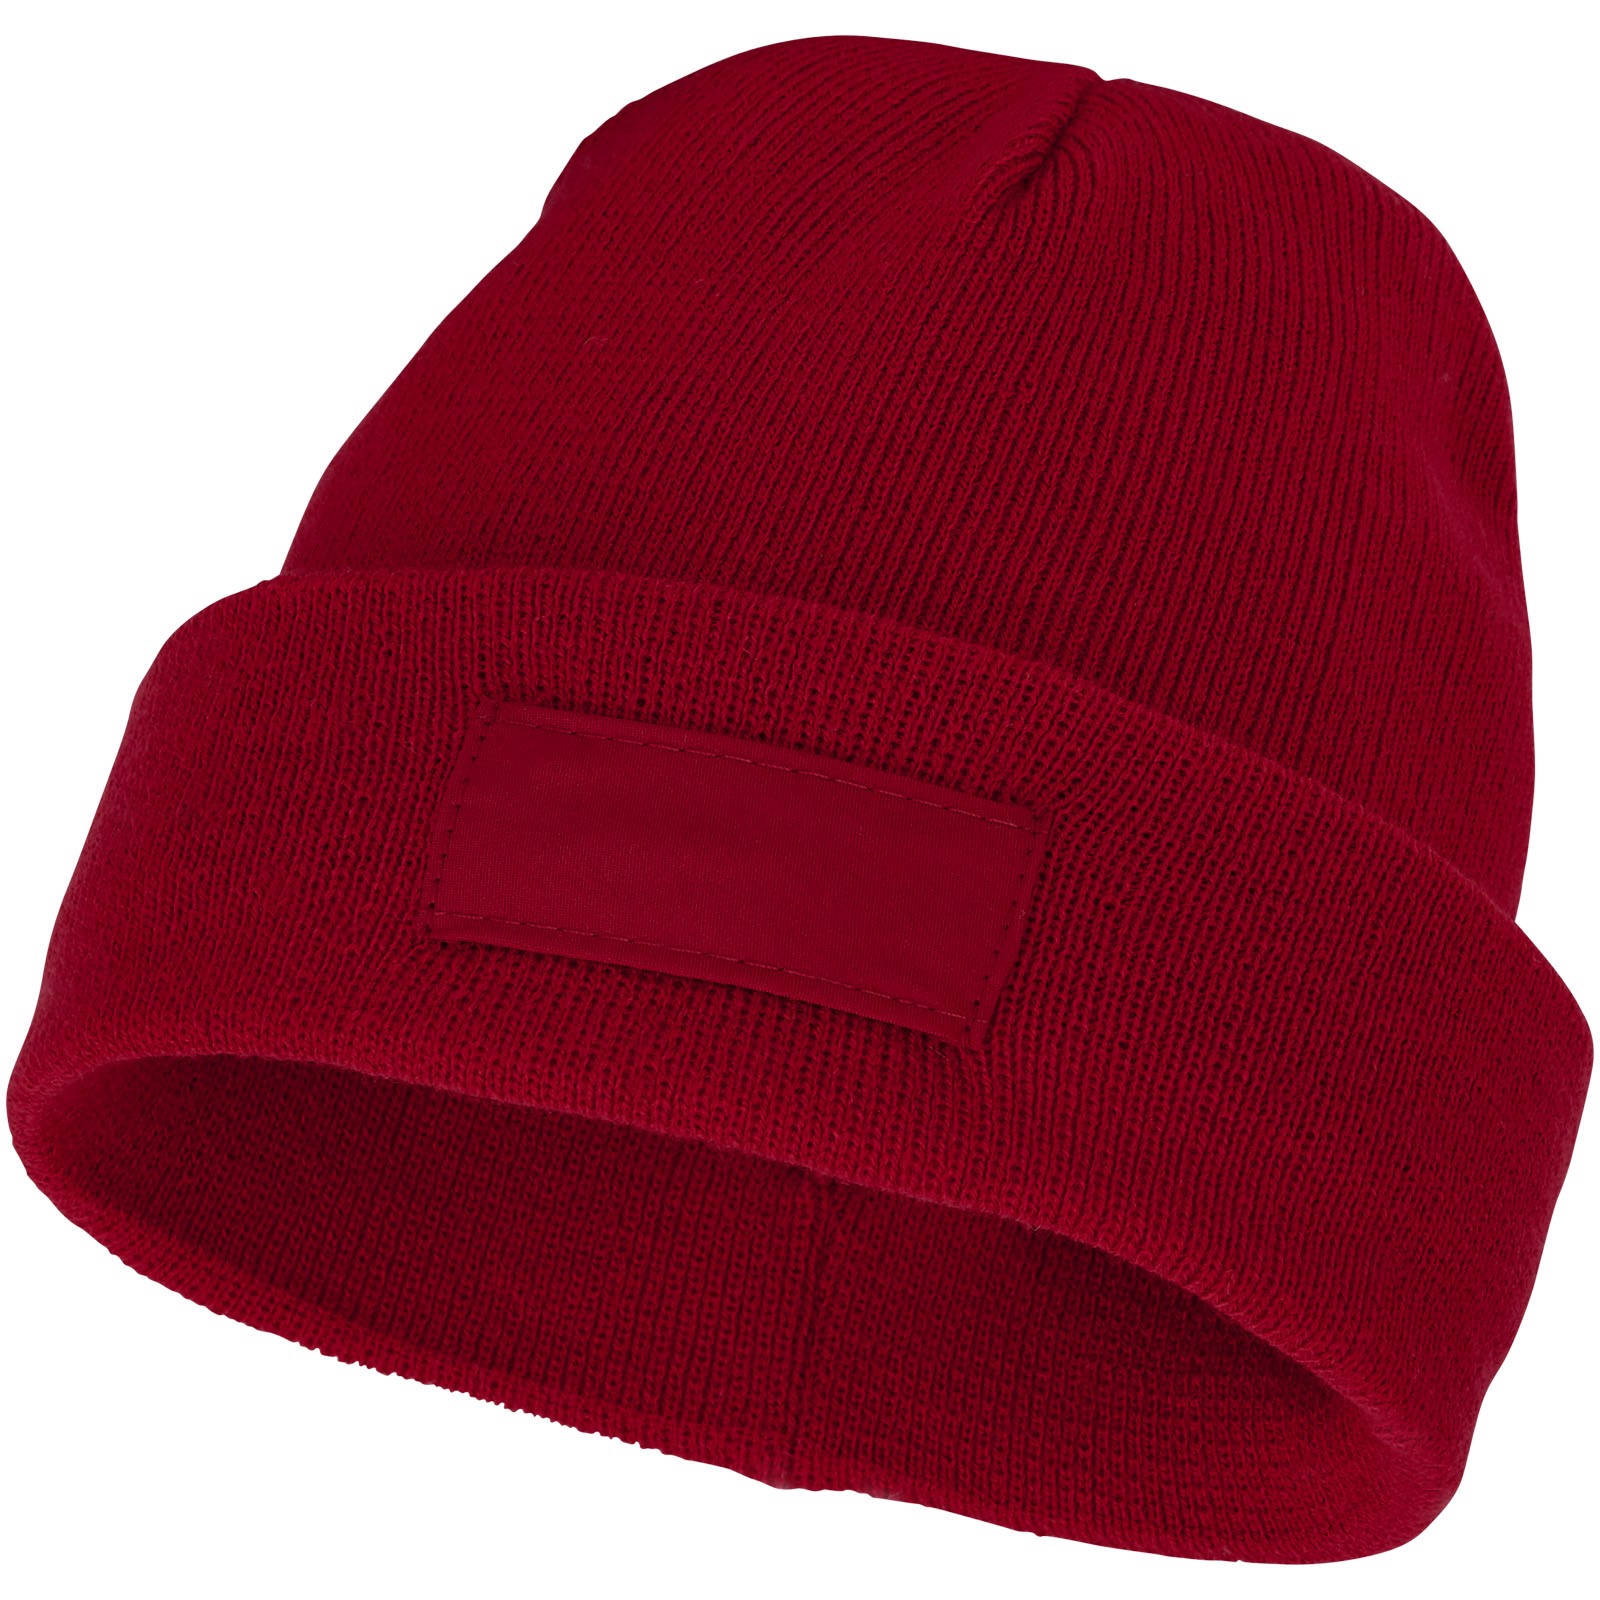 Boreas beanie with patch - Red